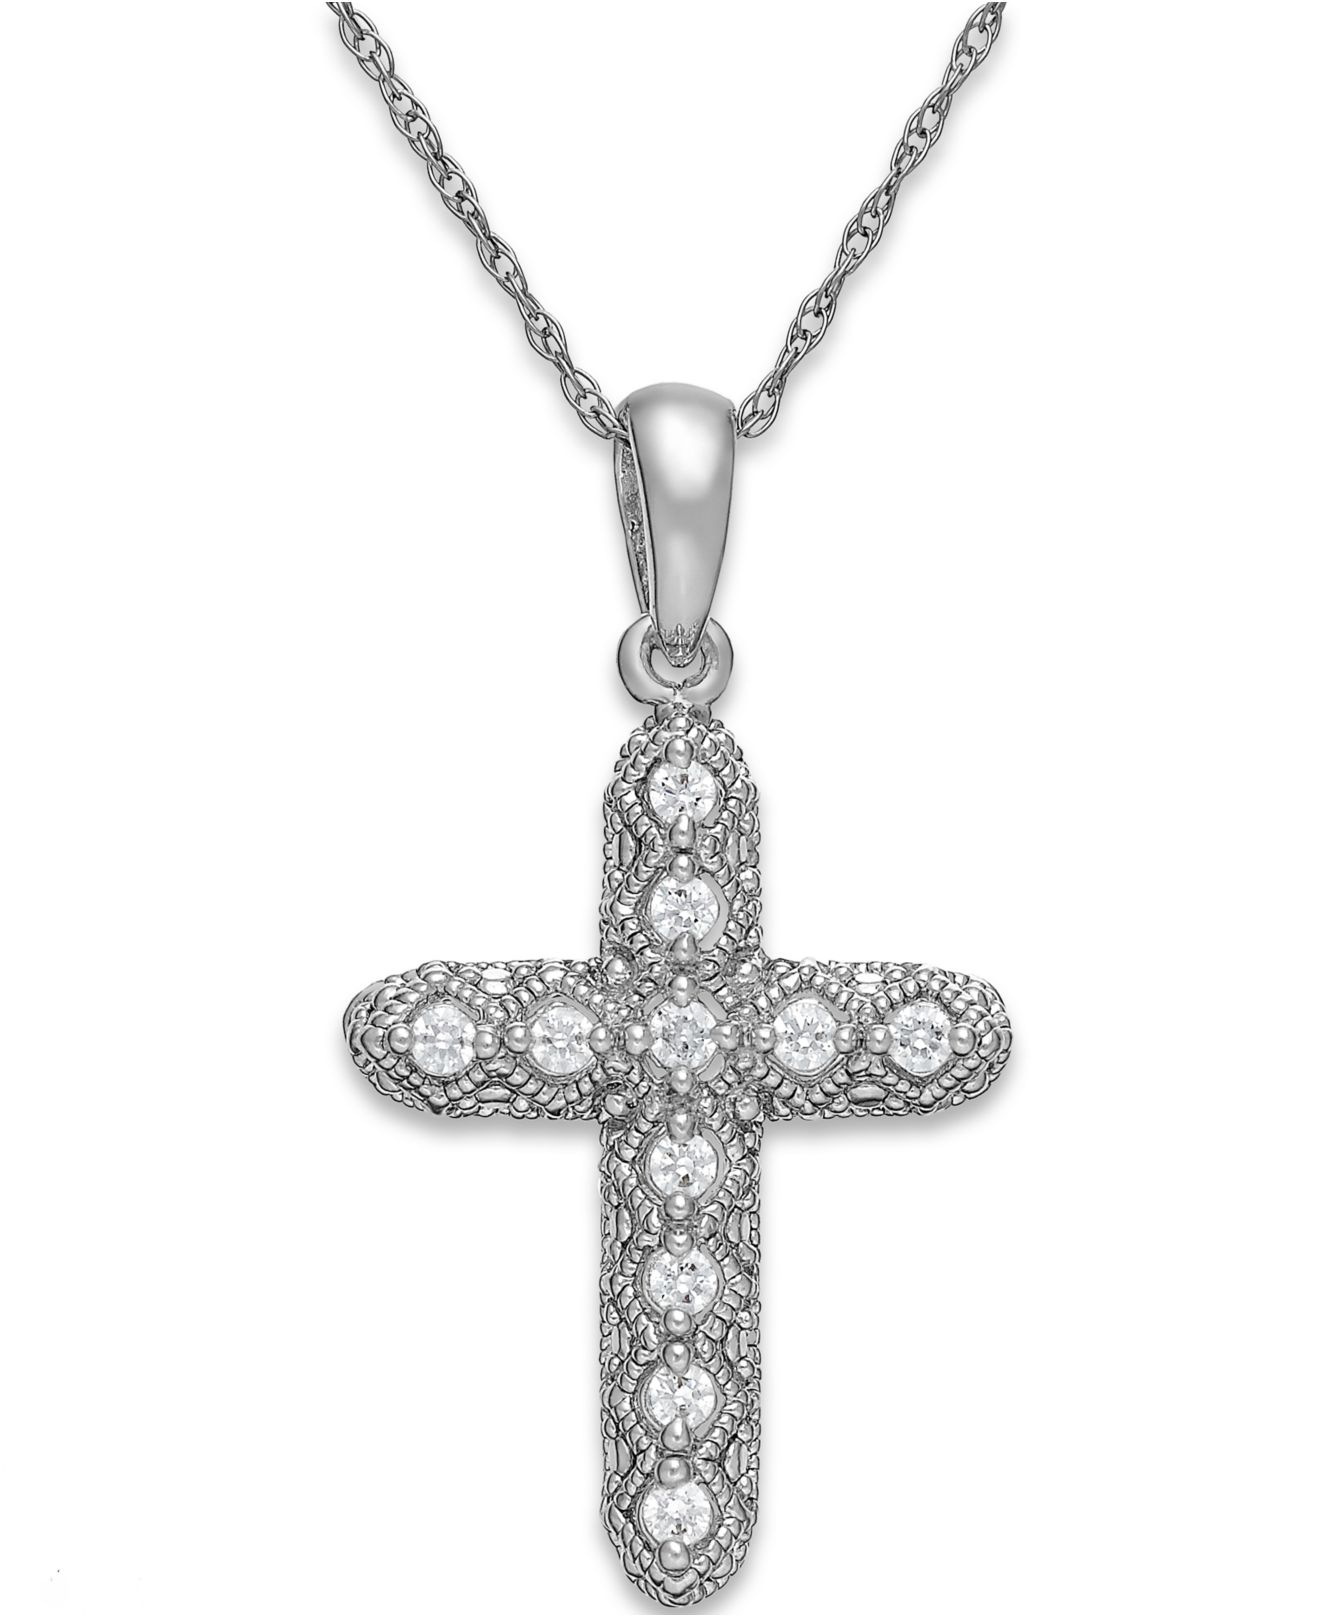 macy 39 s diamond cross pendant necklace in 14k white gold 1. Black Bedroom Furniture Sets. Home Design Ideas